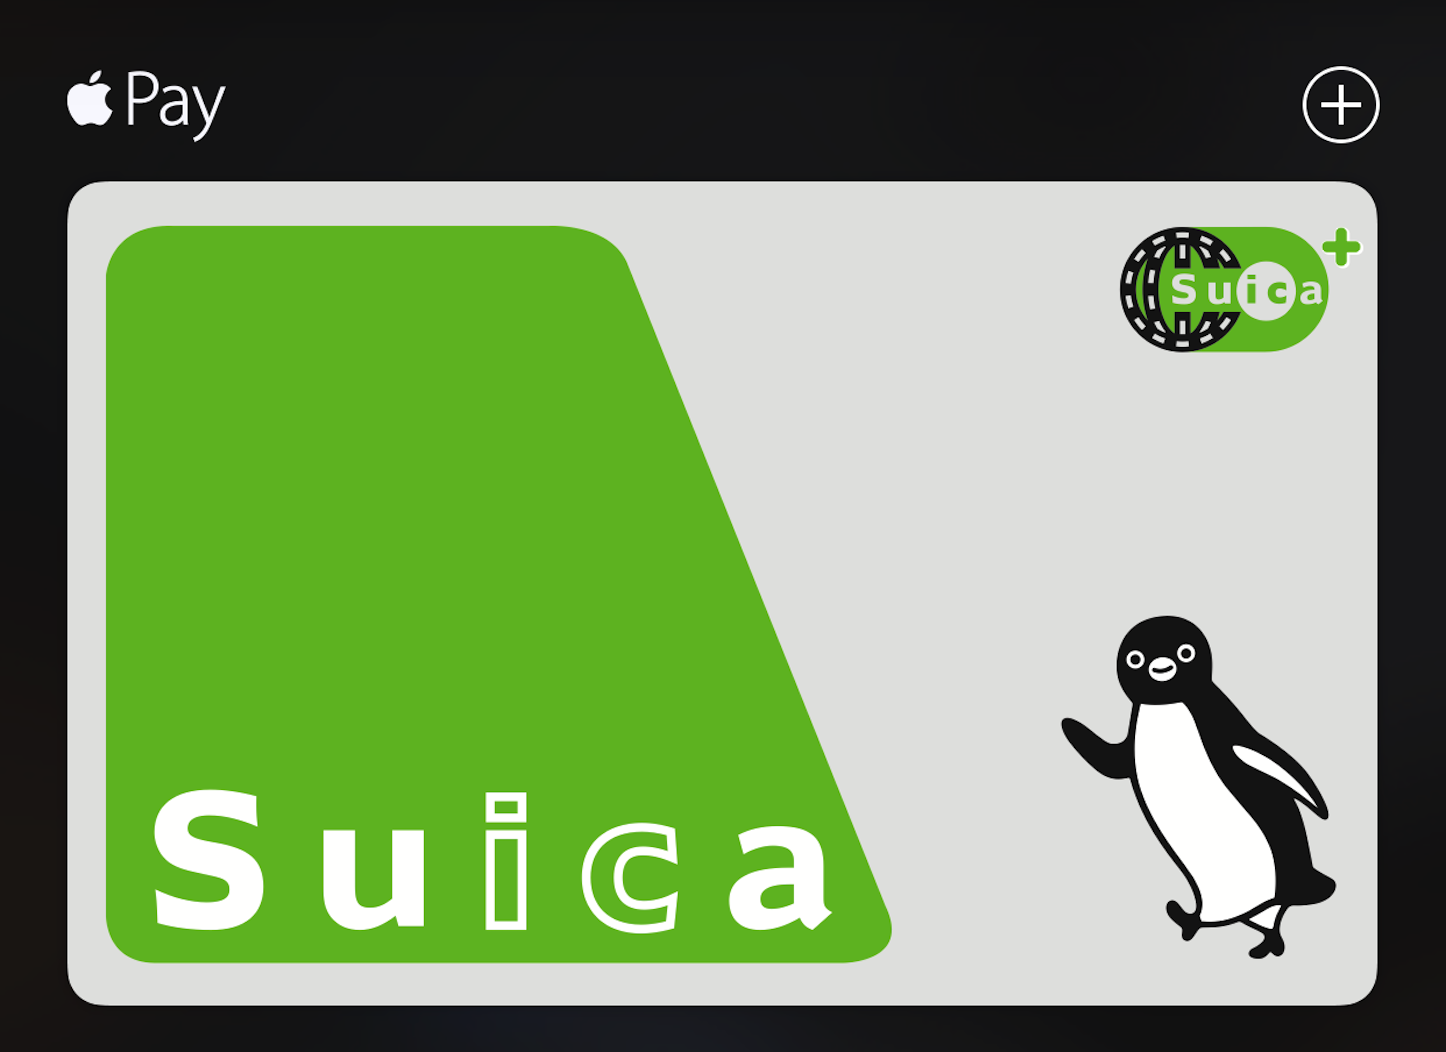 Suica-Card-for-Apple-Pay.PNG